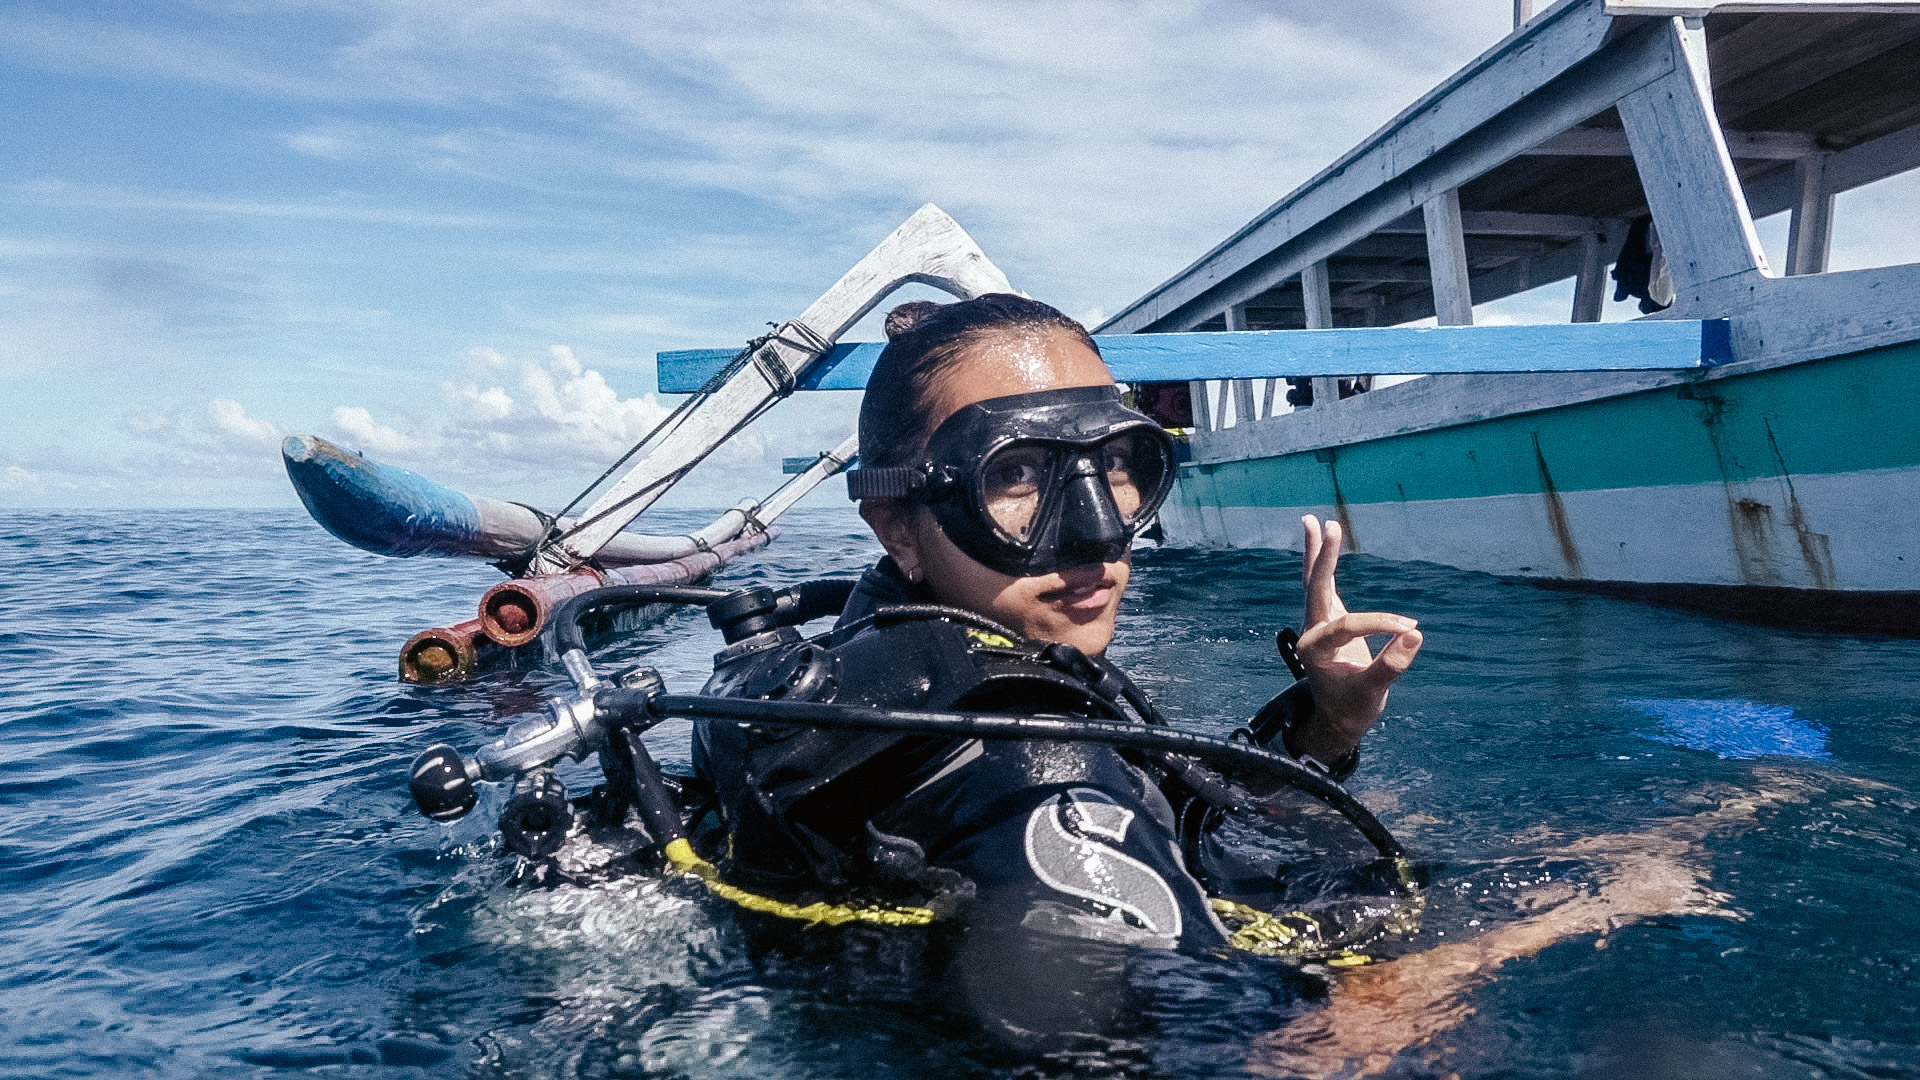 sirimah com - Travels - PADI Open Water Diver Course